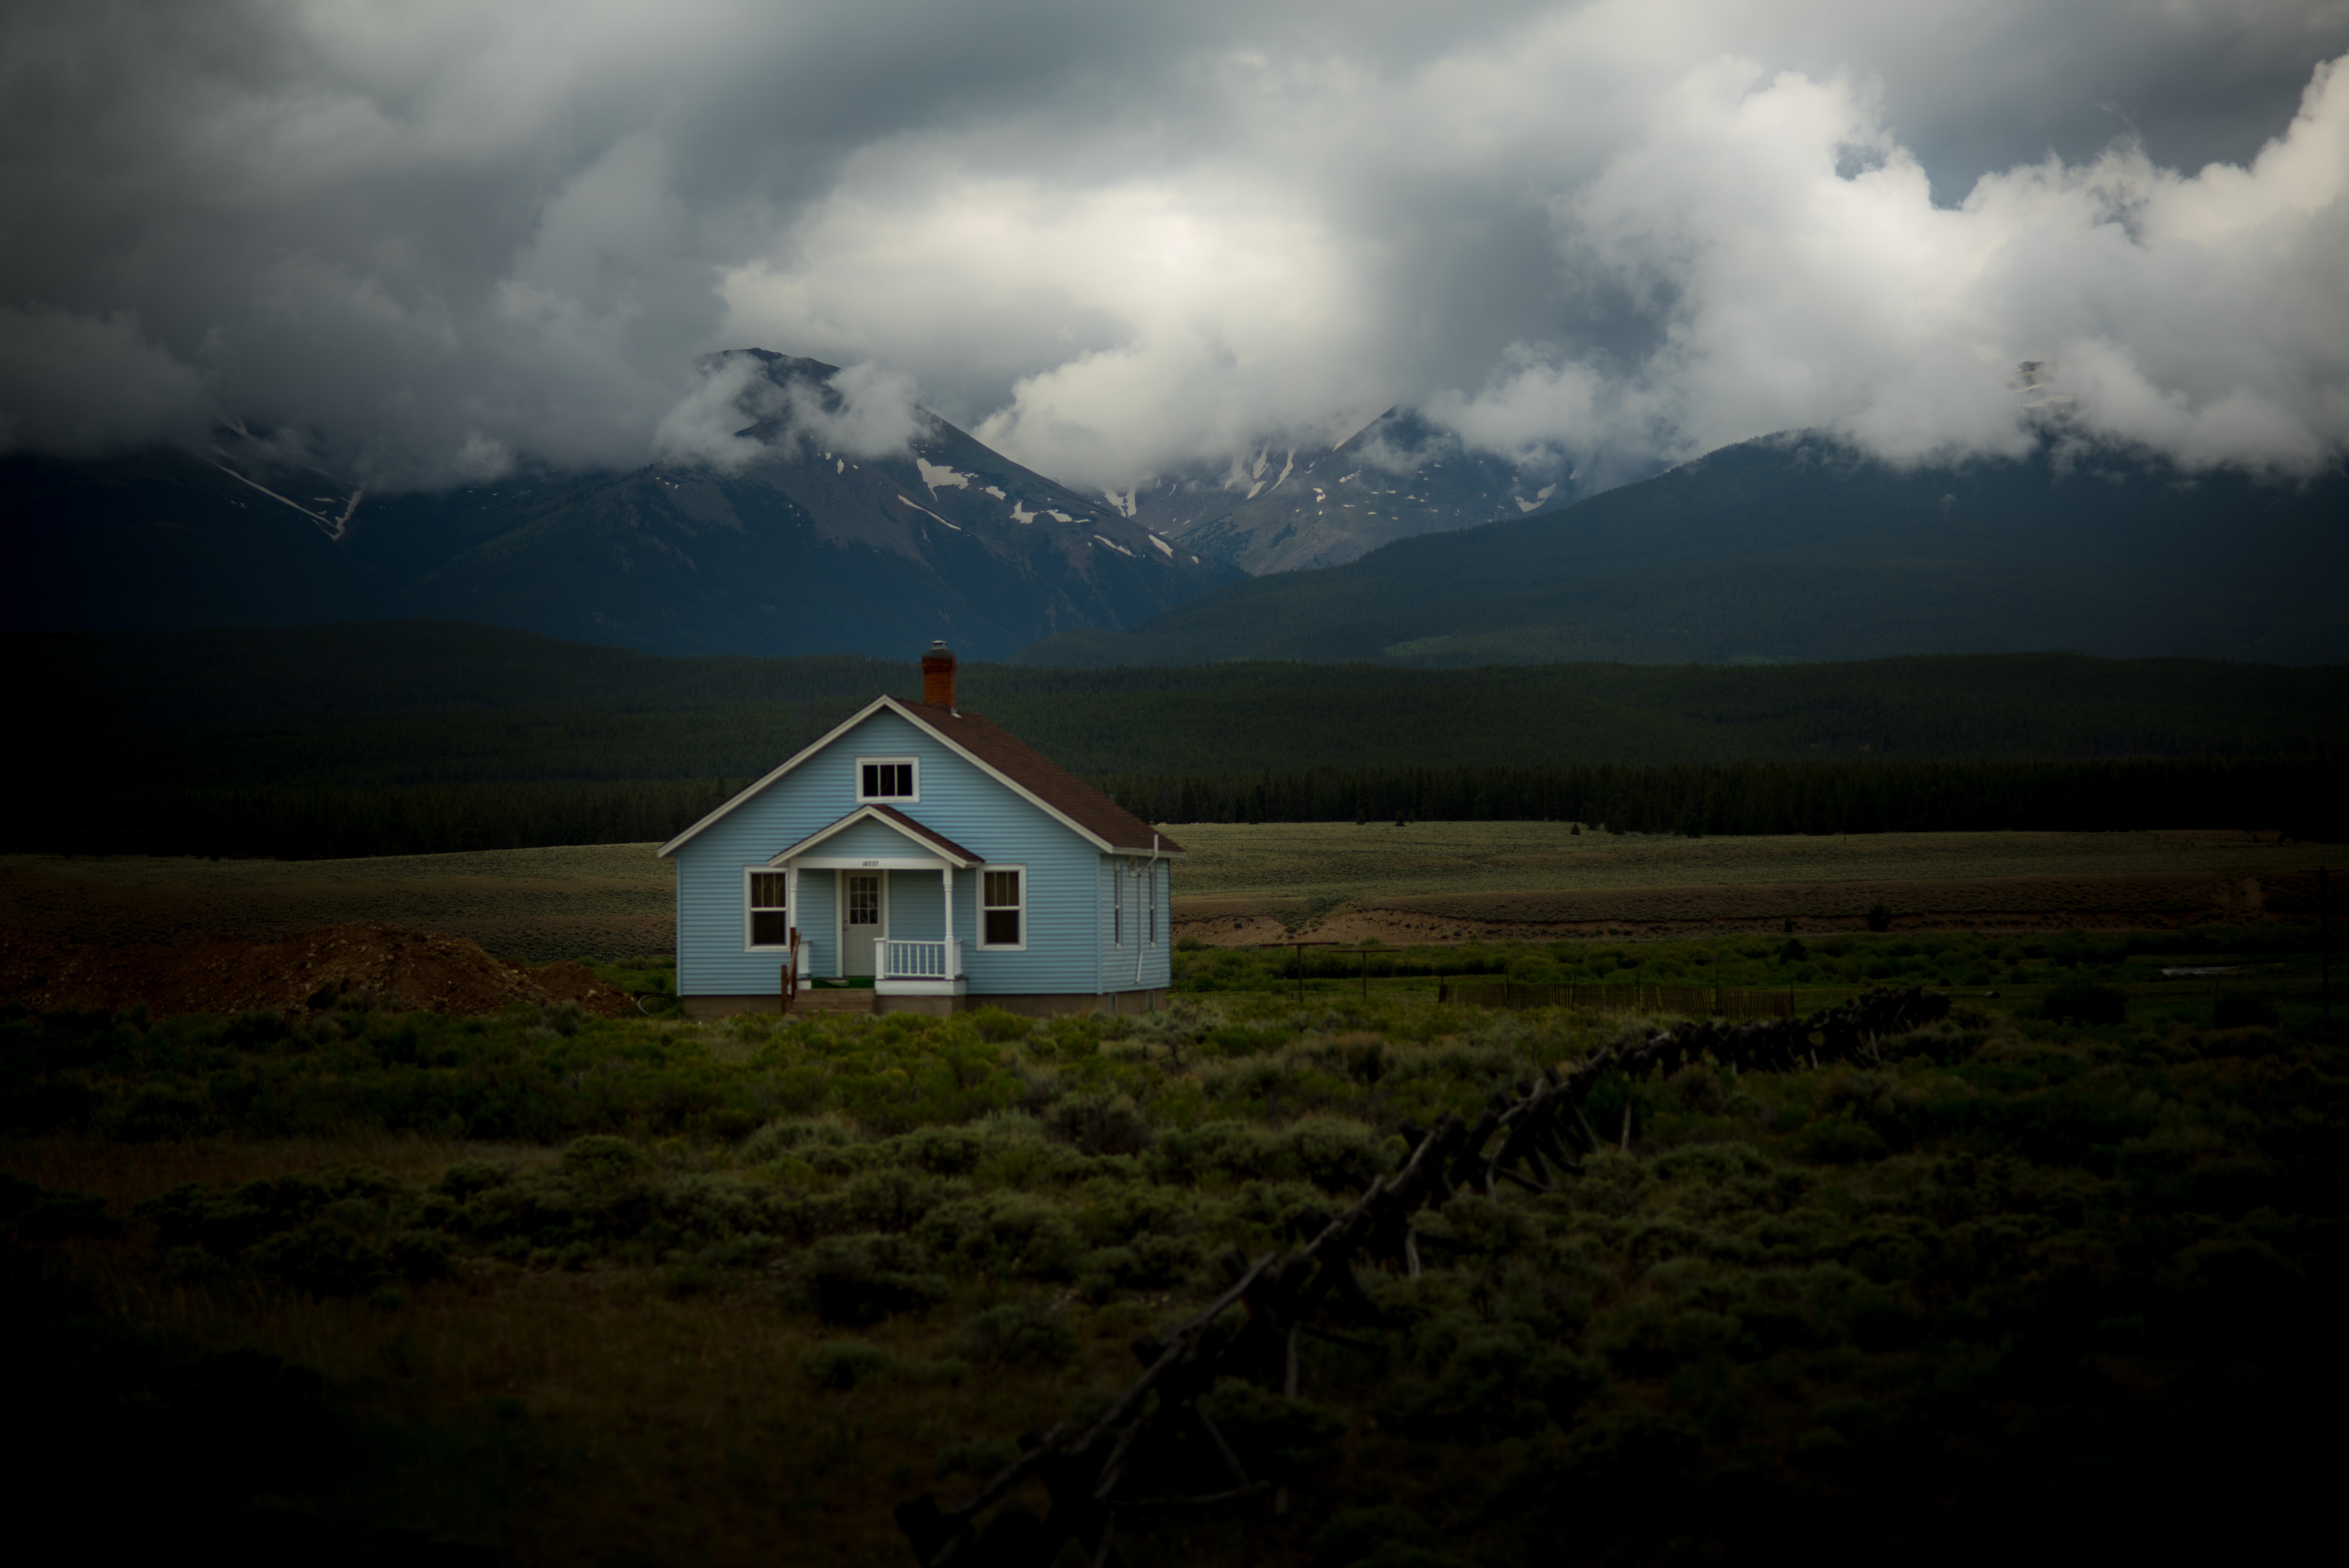 A small, baby blue house in the middle of a foggy field with snow-capped mountains in the distance.